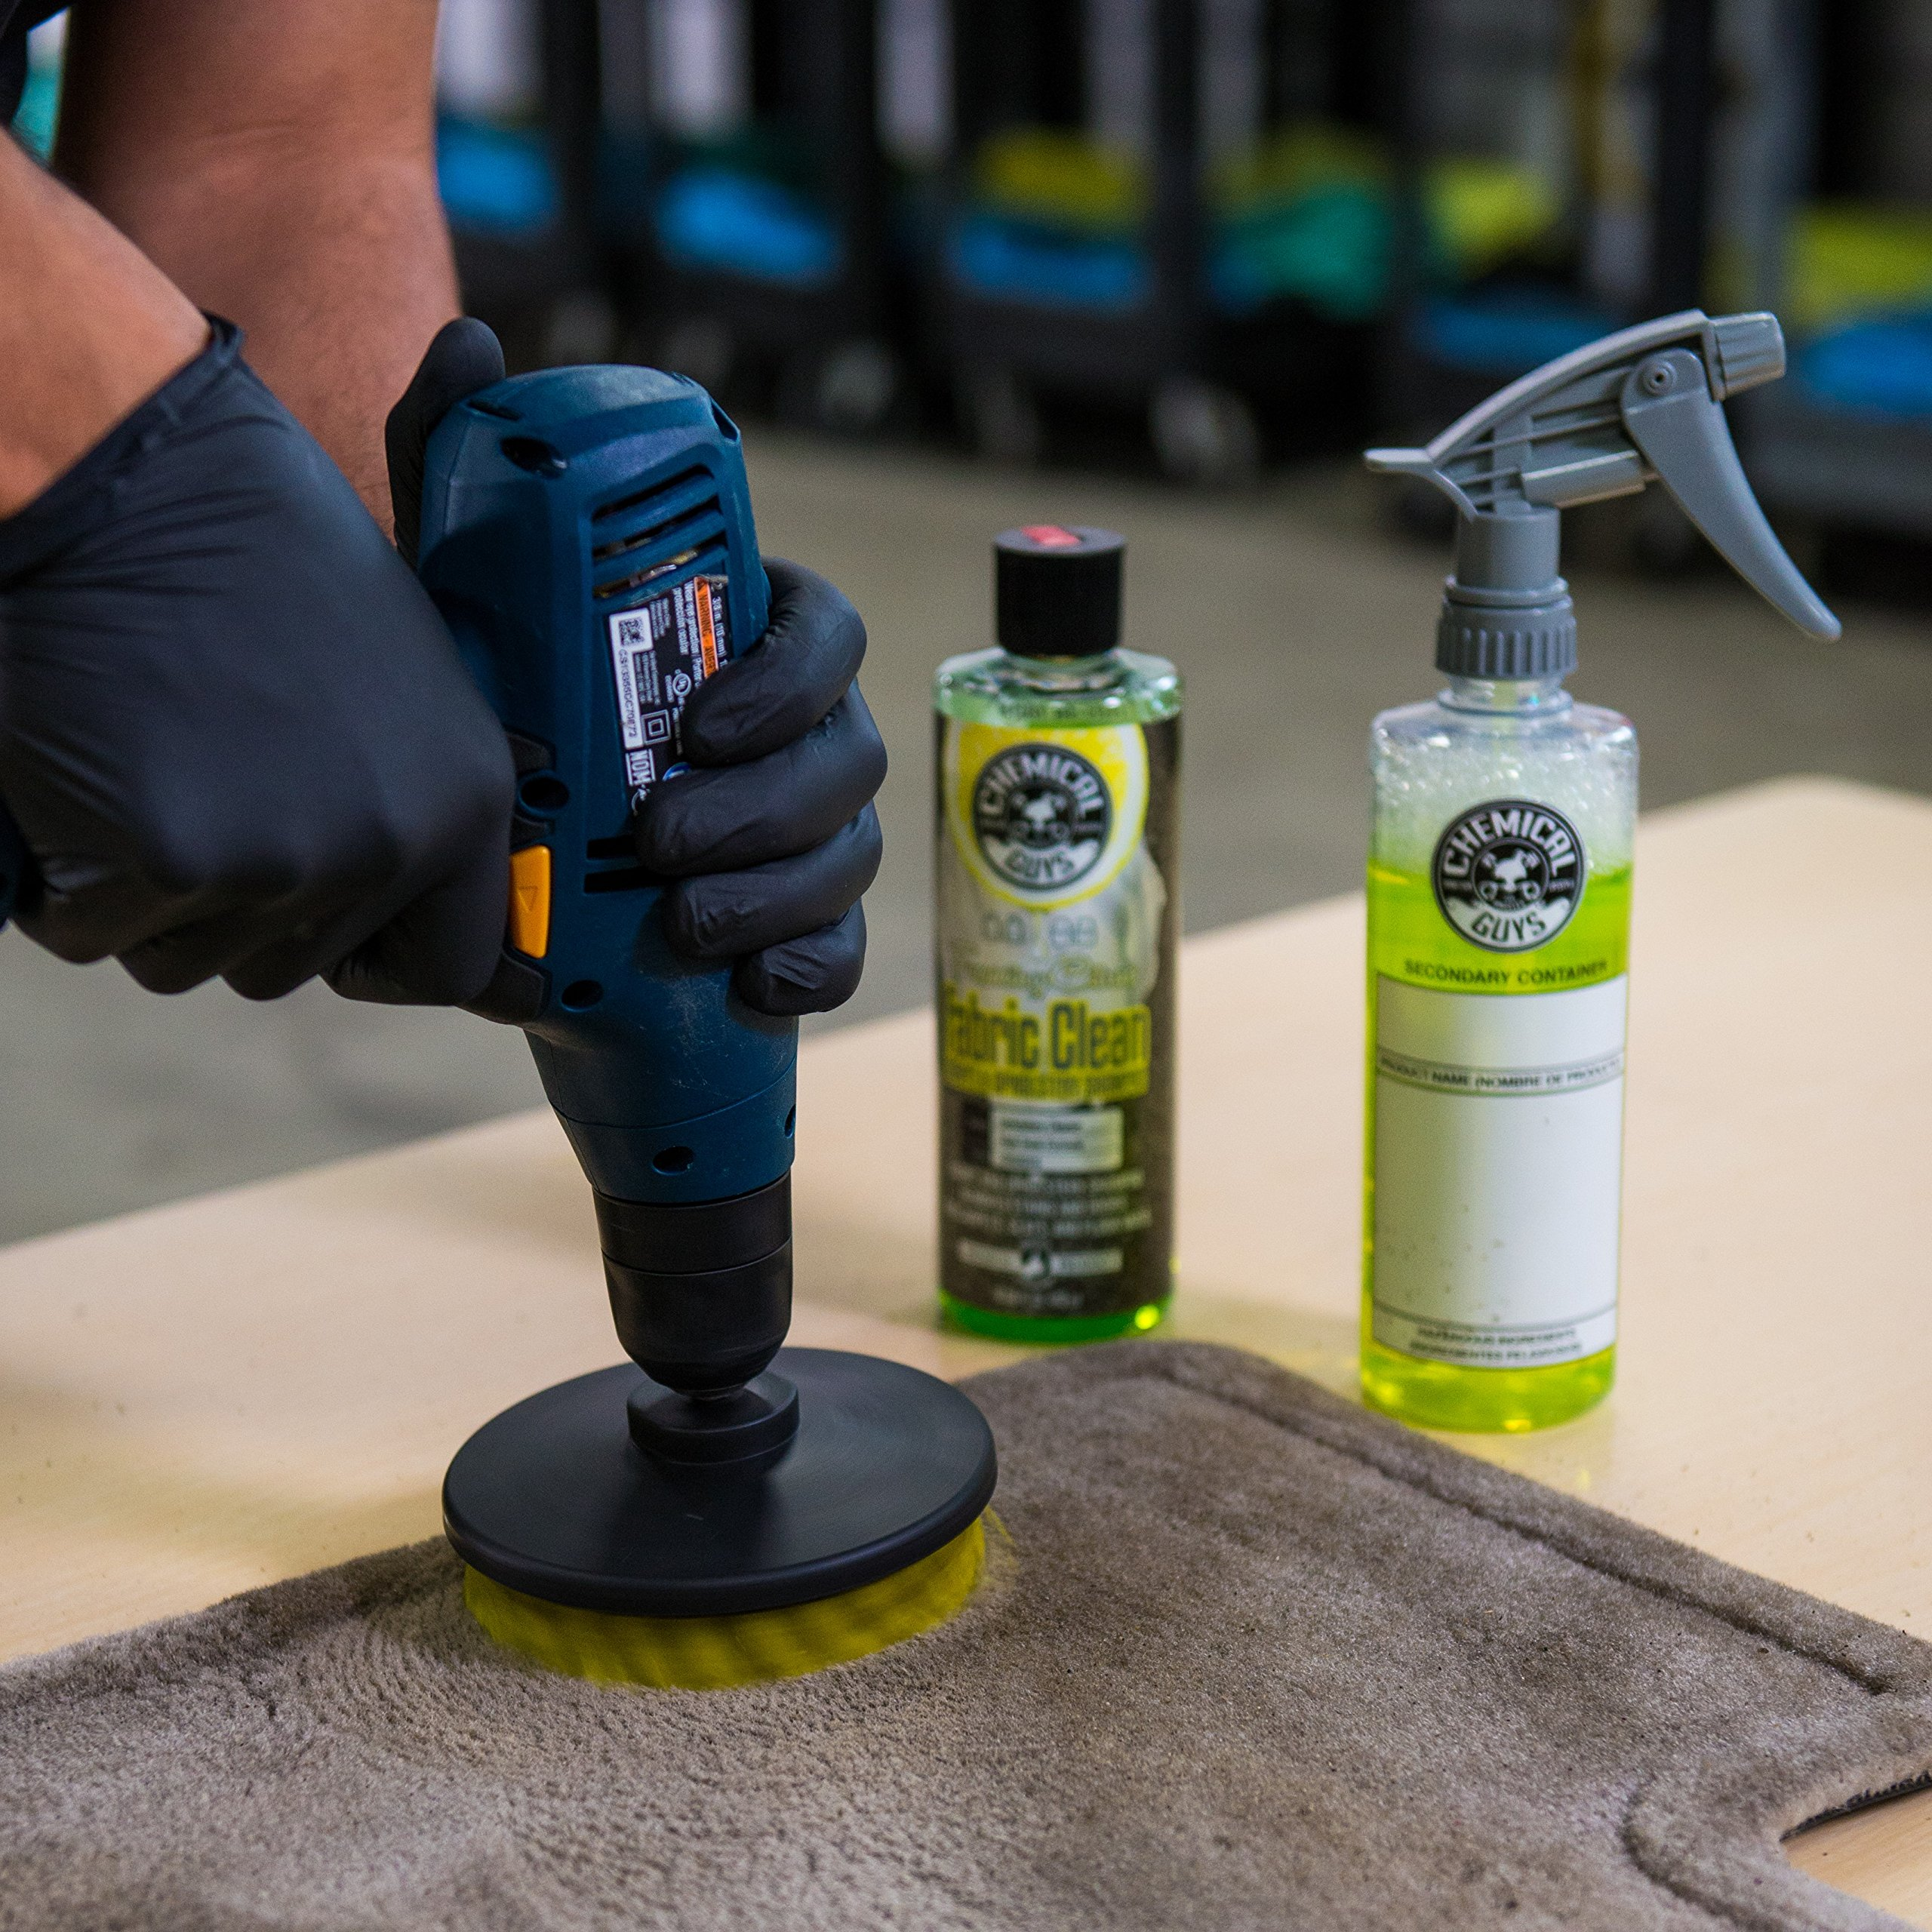 Chemical Guys HOL315 Carpet and Upholstery Cleaning Kit (3 Items), 16. Fluid_Ounces by Chemical Guys (Image #6)